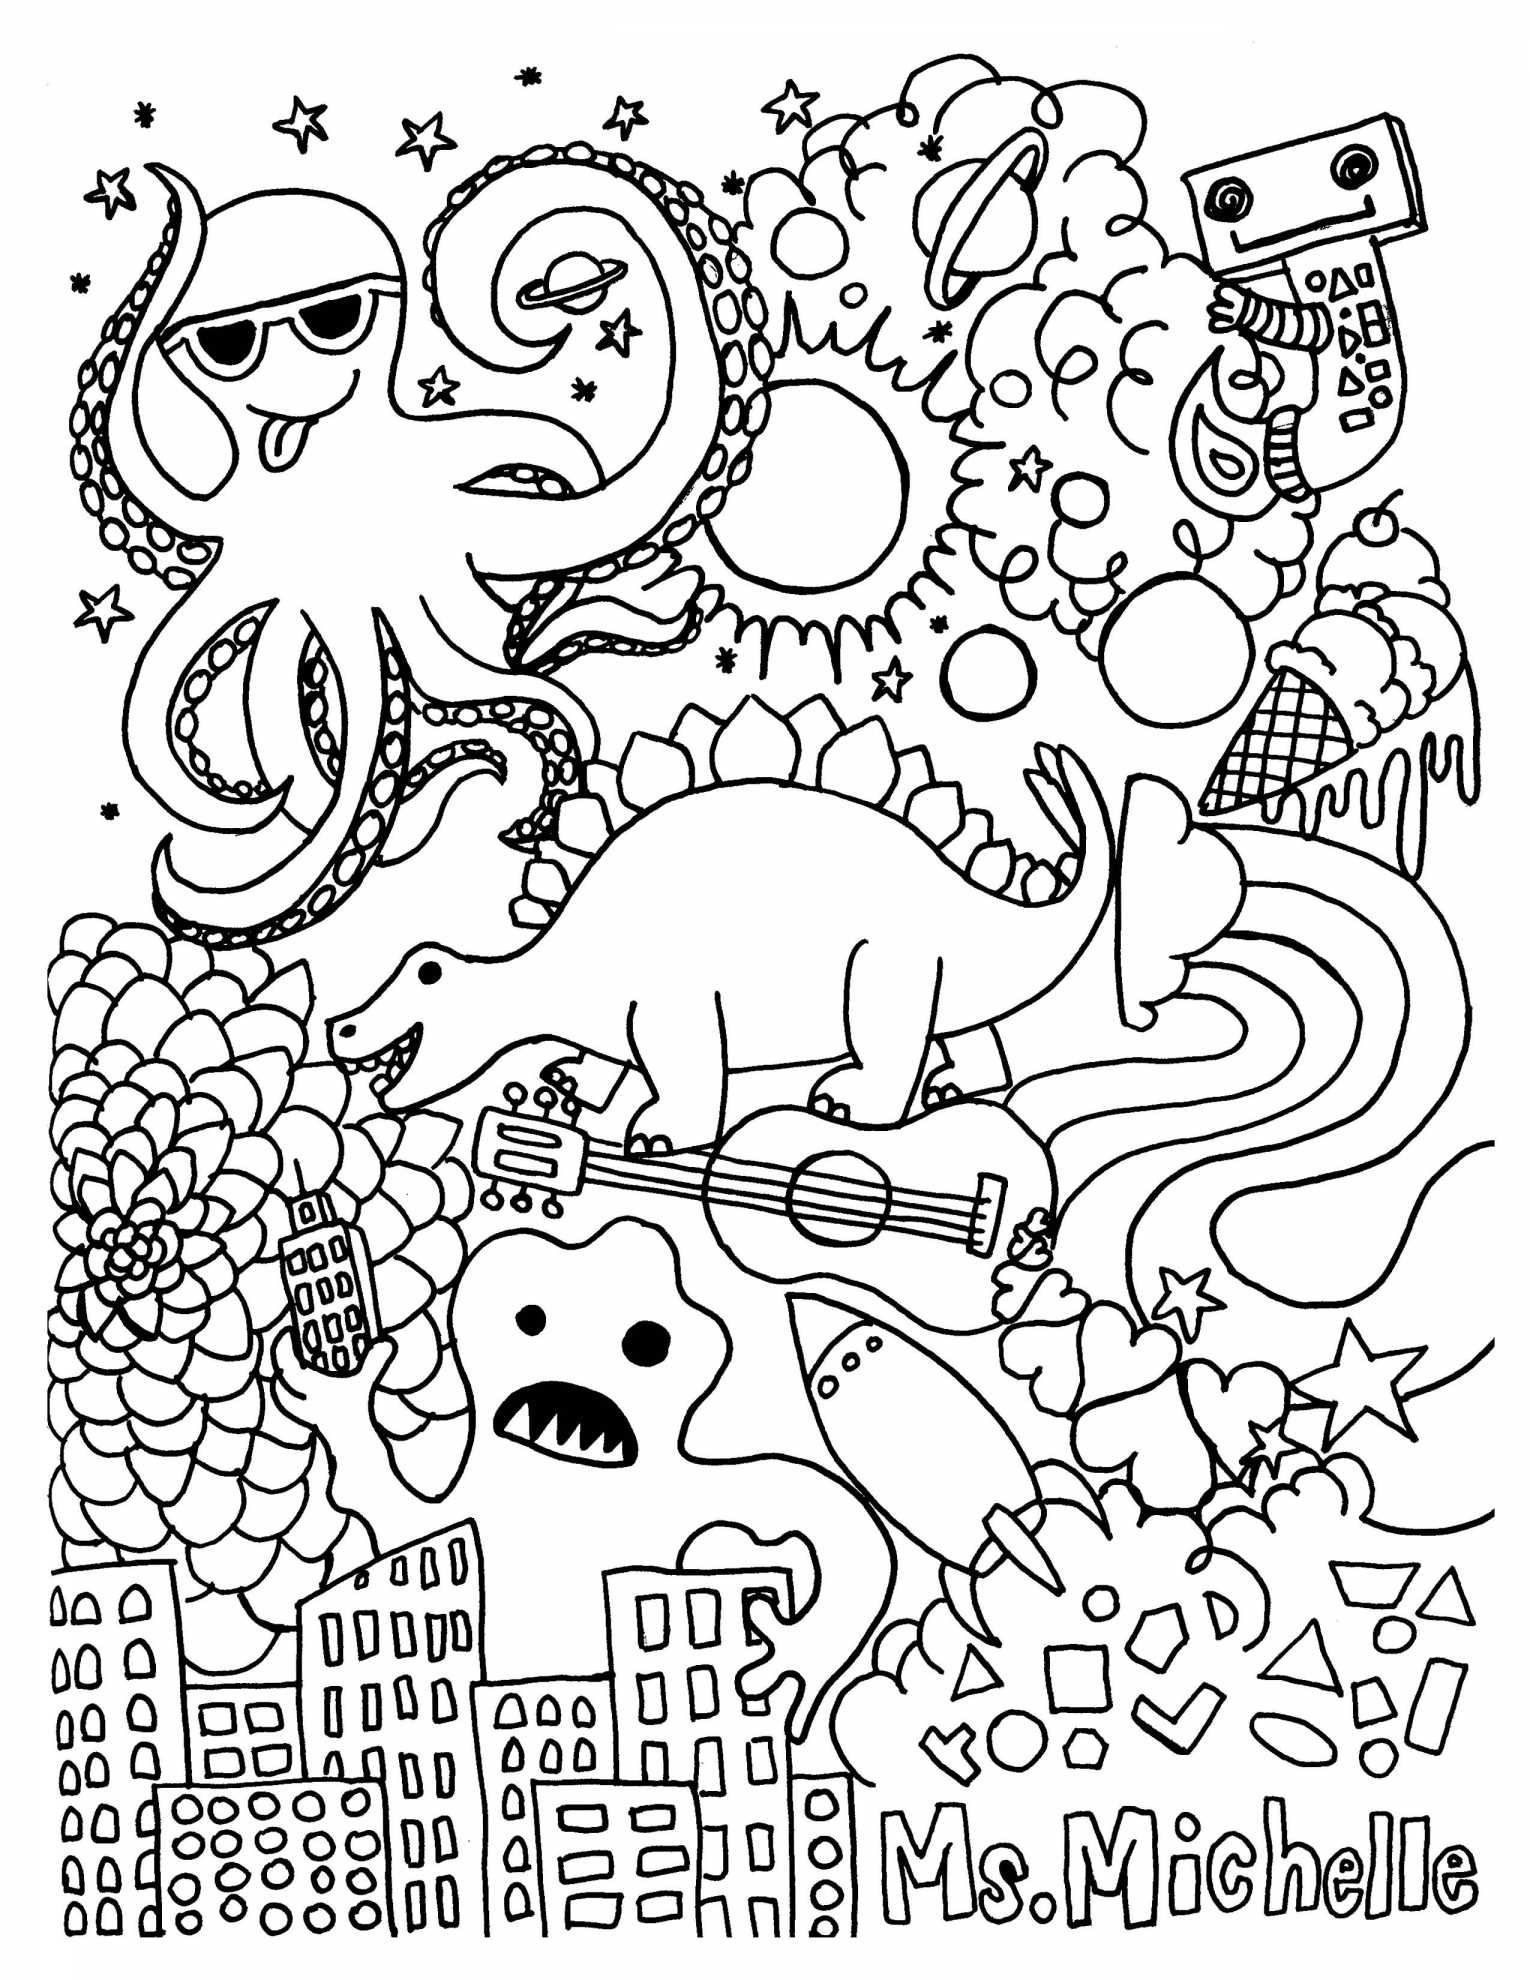 hair coloring pages Collection-United States Map Refrence Kids Coloring Line Lovely Hair Coloring Pages New Line Coloring 0d 20-o